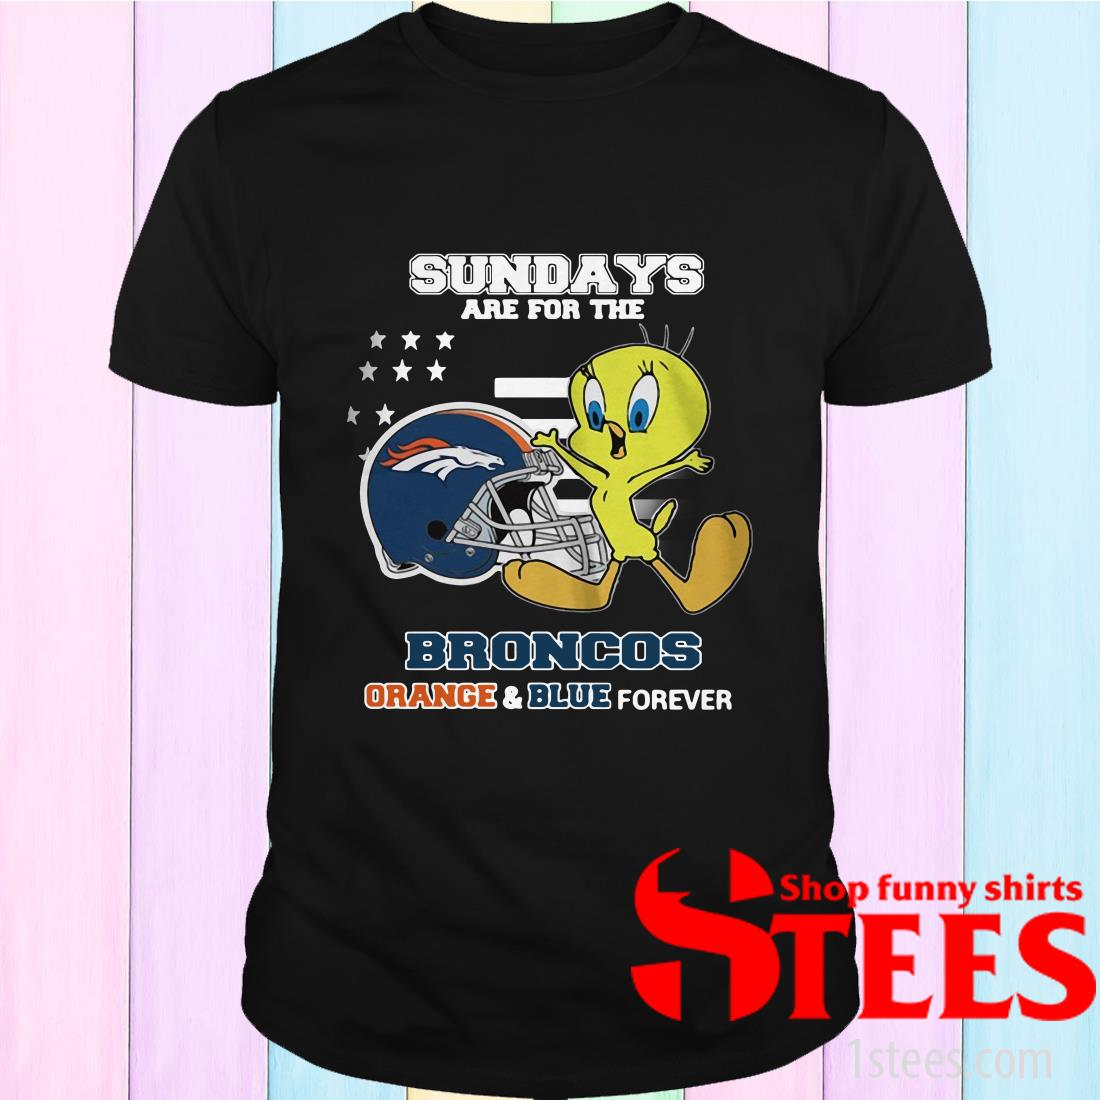 Sundays Are The Broncos Orange And Blue Forever Veteran Shirt